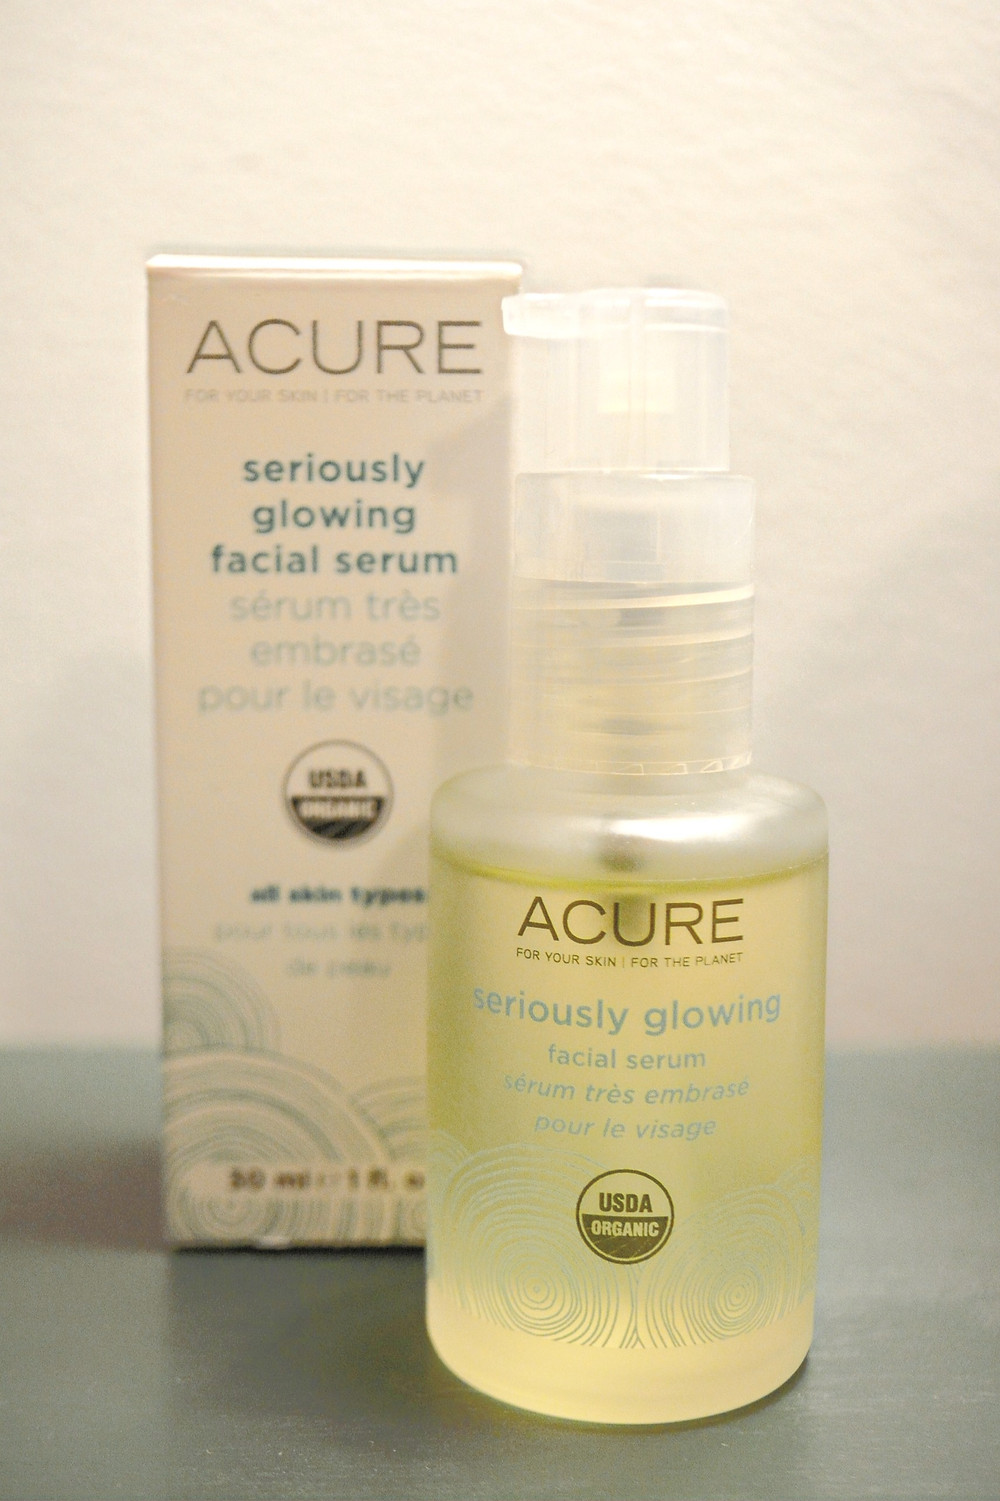 Acure Seriously Glowing Facial Serum